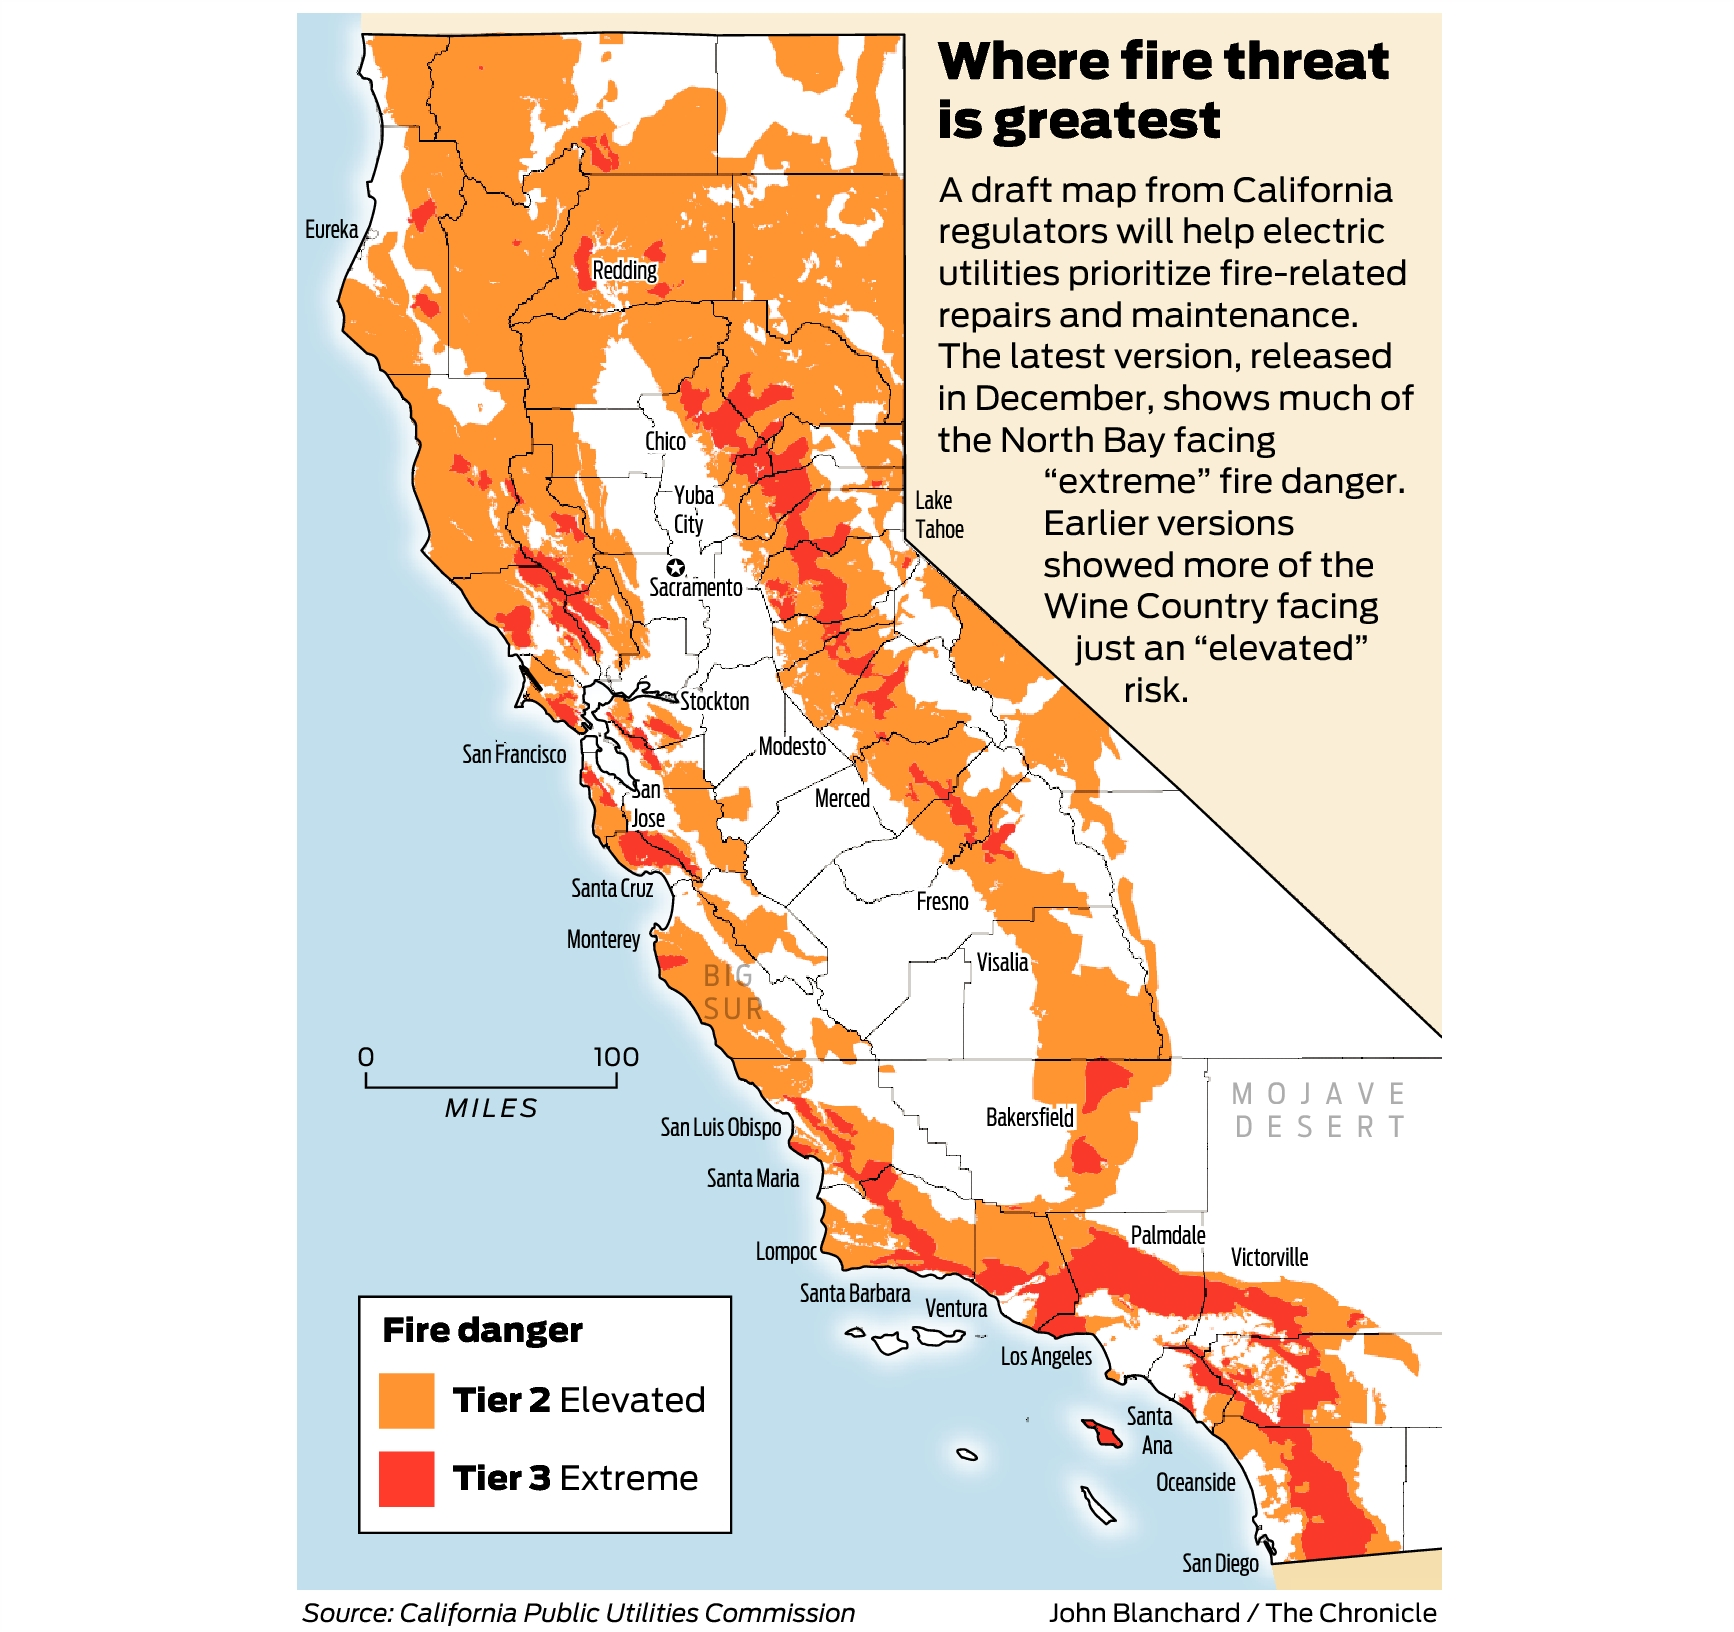 California fire threat map not quite done but close, regulators